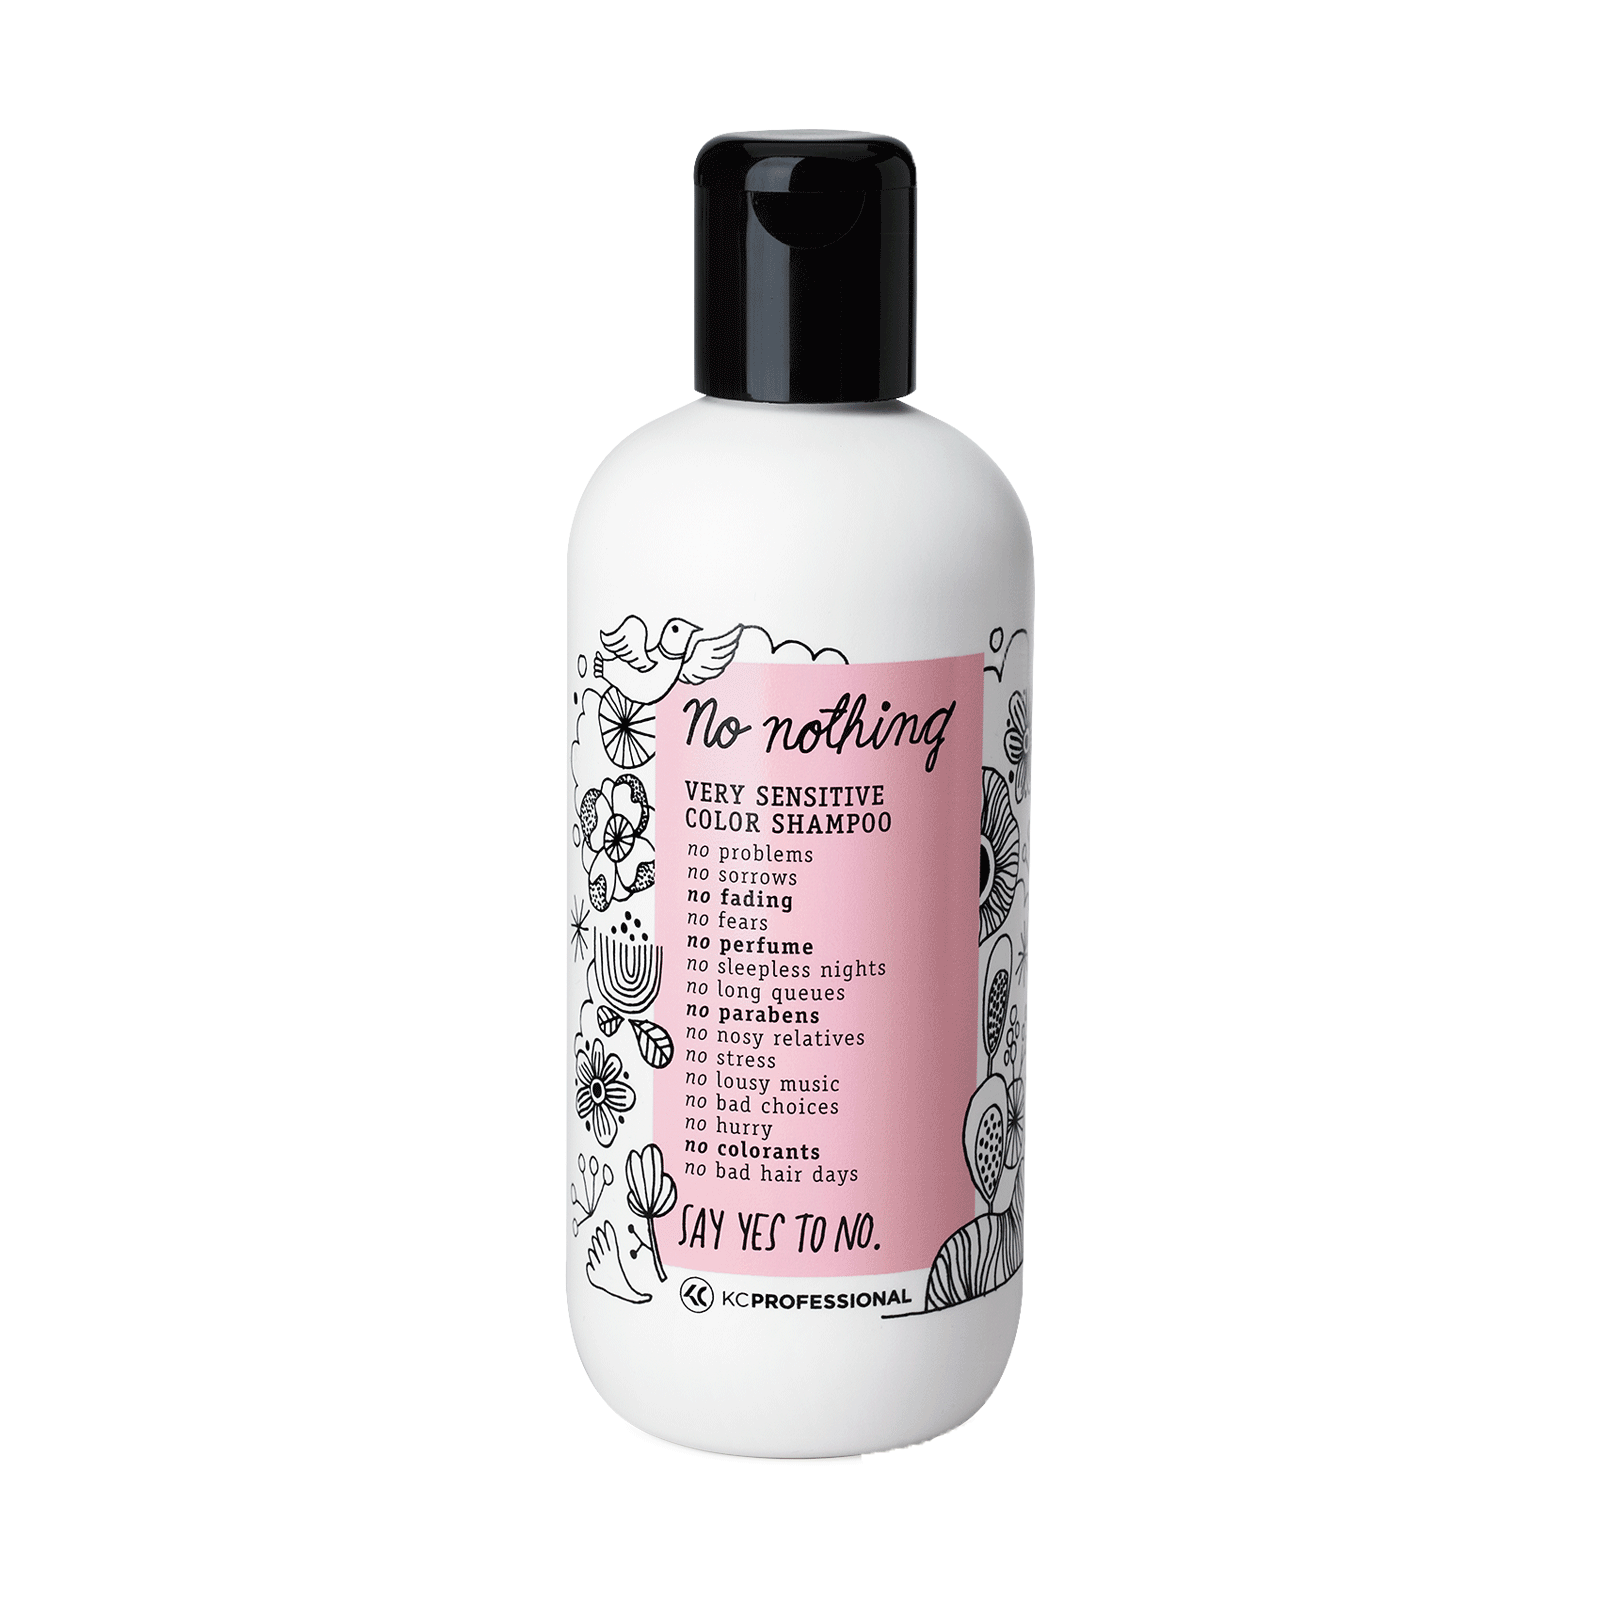 Very Sensitive Color Shampoo